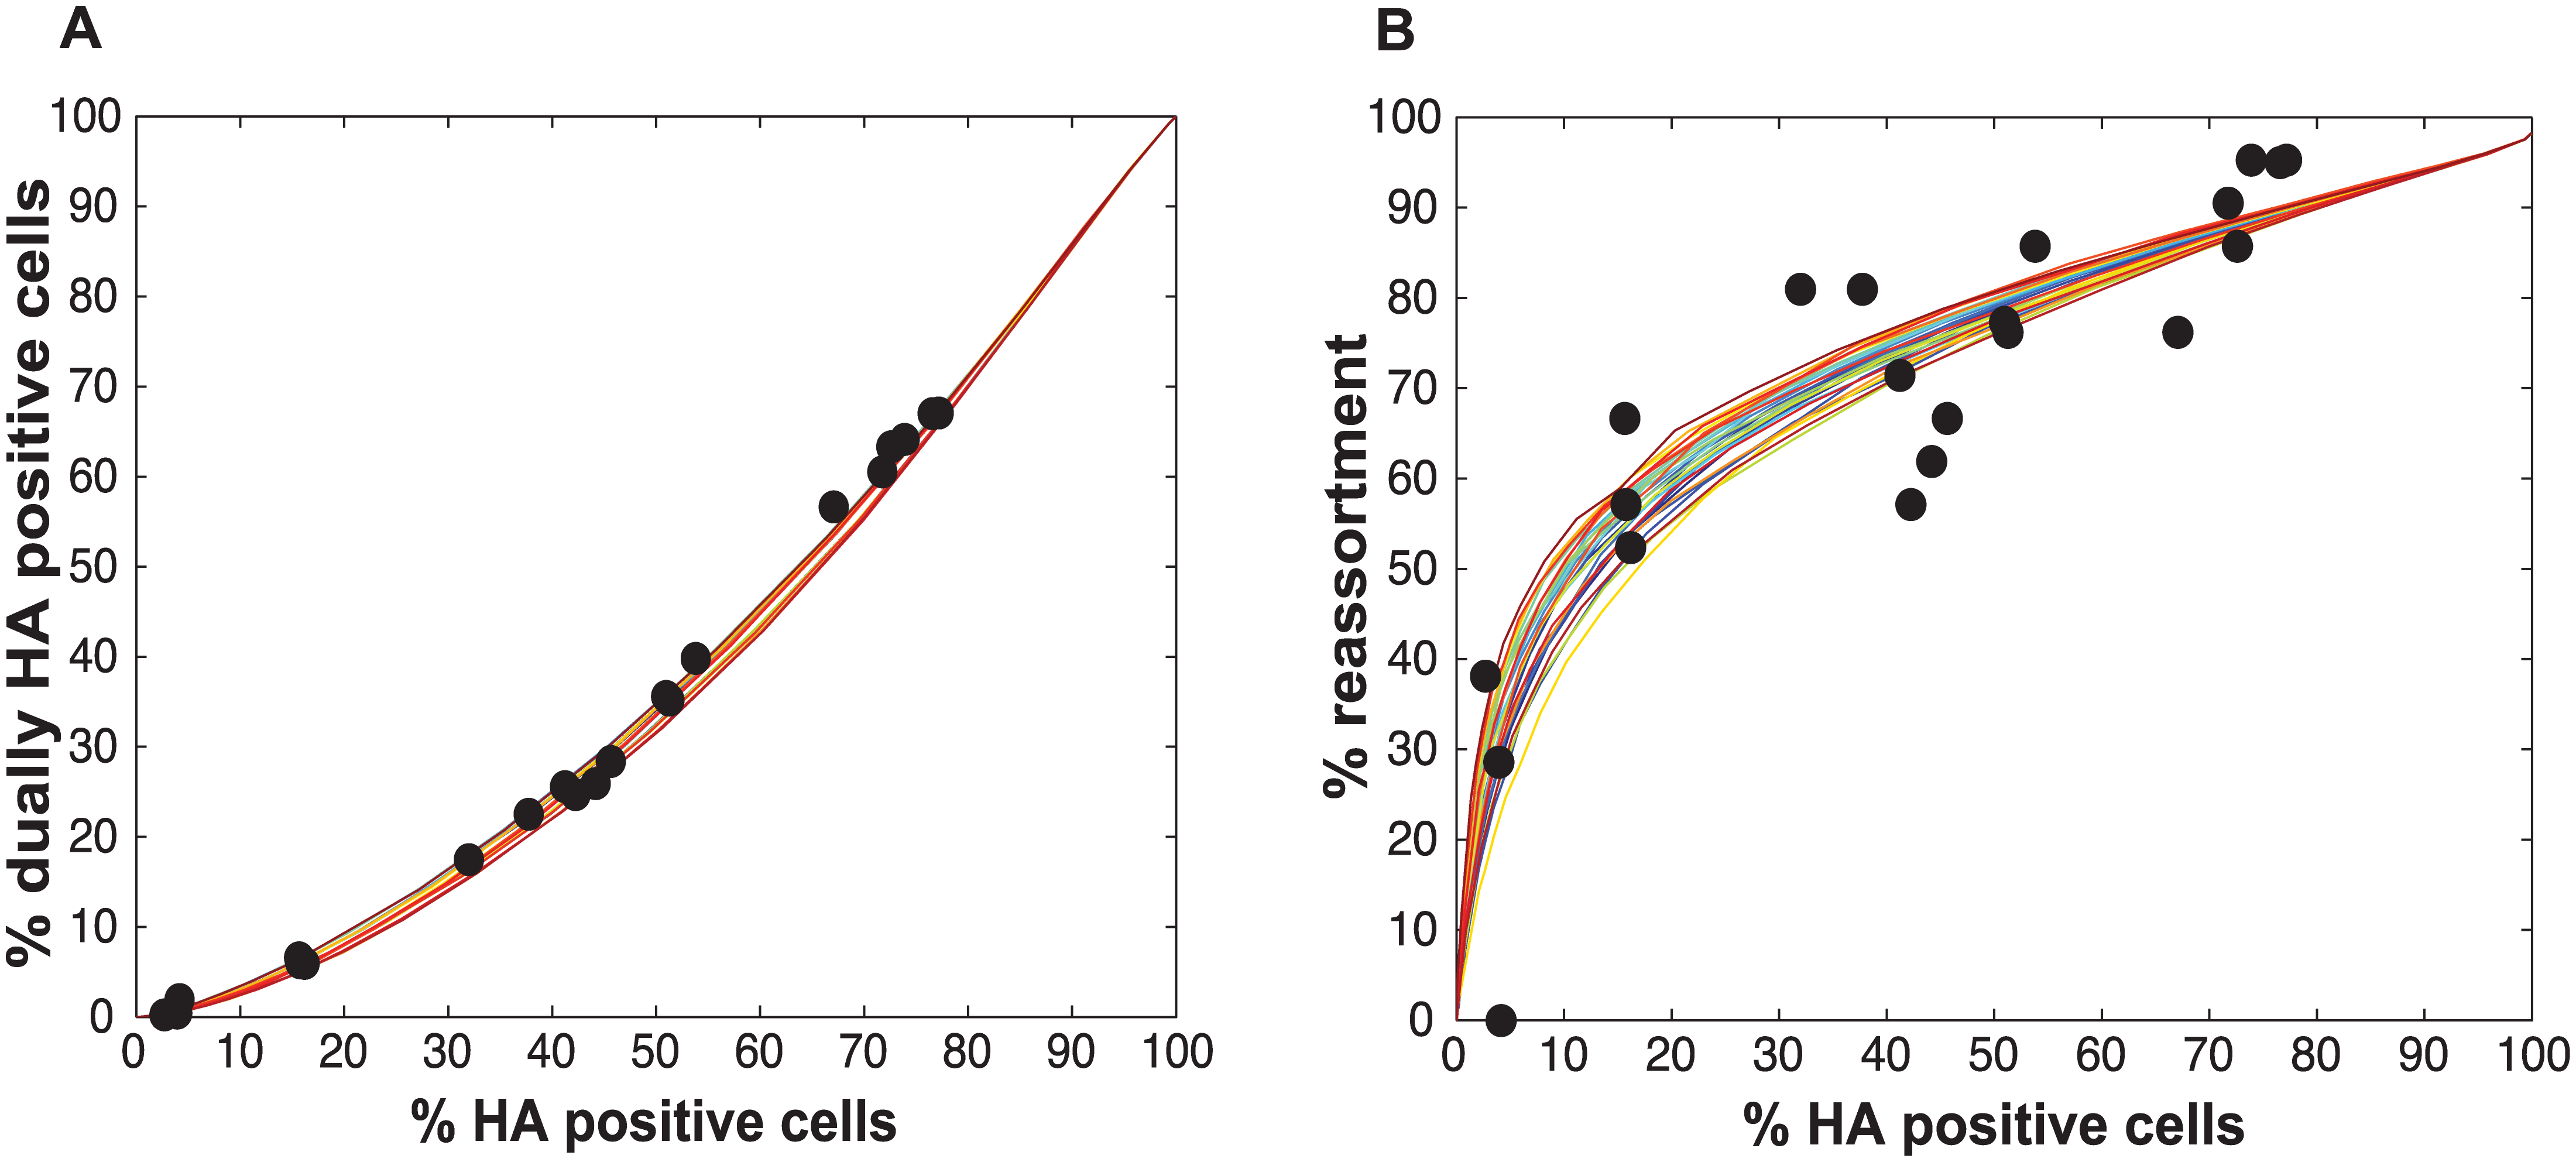 Varying P<sub>P</sub> by segment yields good fit between modeled and observed relationships among HA positive cells, dually HA positive cells and reassortment.